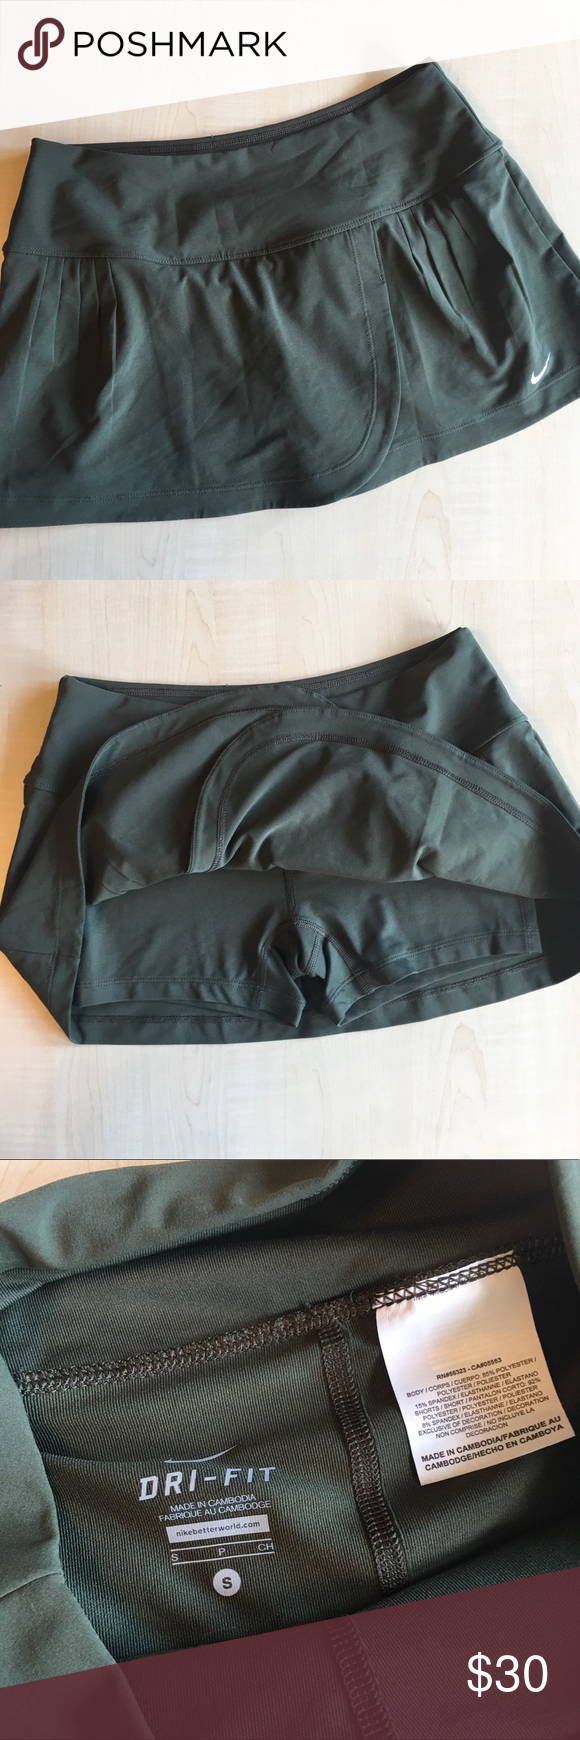 Nike Dri Fit Skort Athletic Skirt NWOT Nike Dri Fit Athletic Skort Skirt   Color: Olive Green  -A12- Nike Skirts